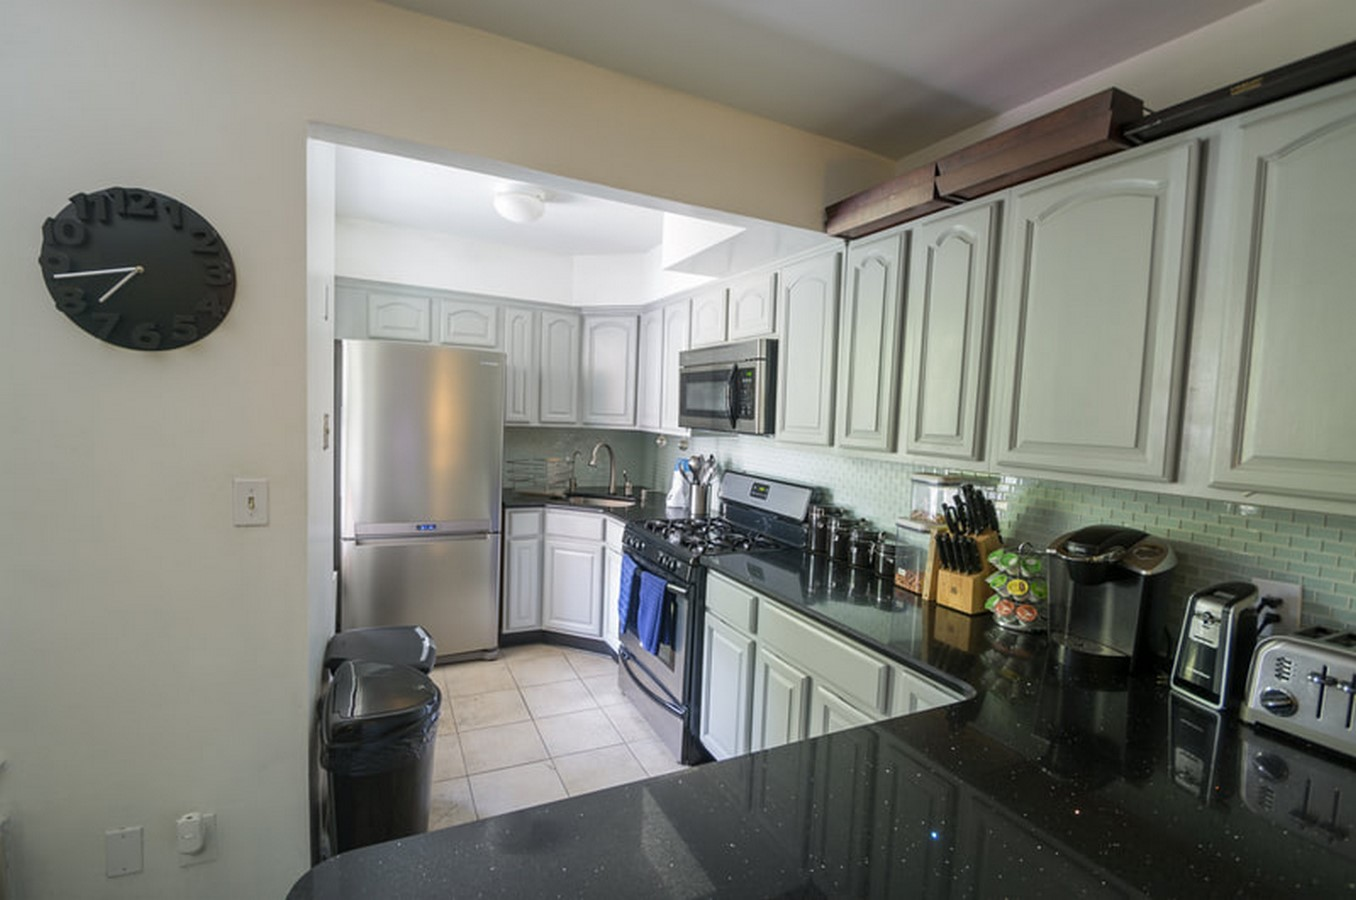 KITCHEN RENOVATION (COOPERATIVE UNIT) - YONKERS, NY - Sheet3